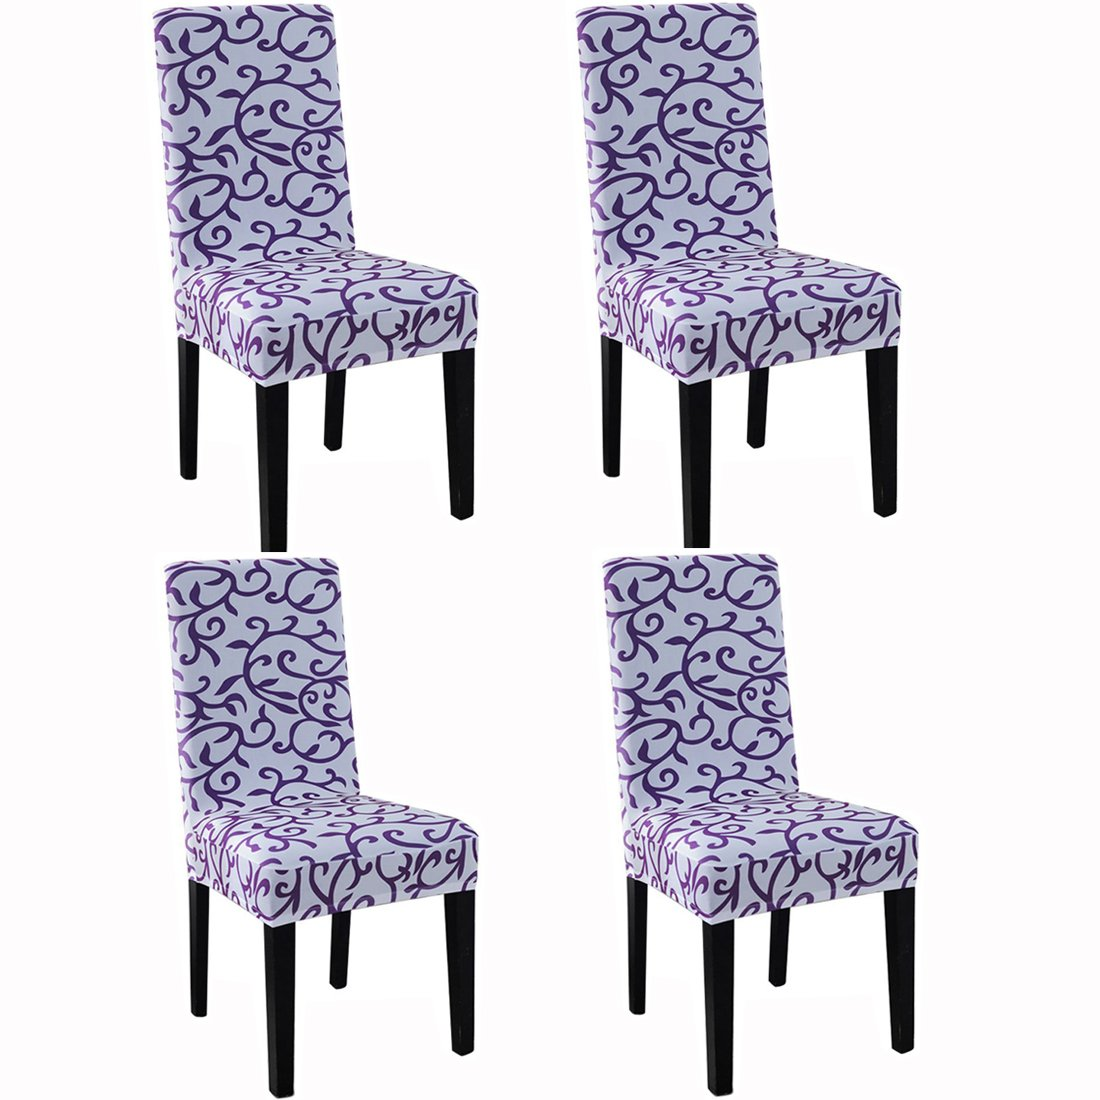 Dining Chair Slipcovers Protector Removable Short Stretch Spandex Dining Room Banquet Chair Seat Cover for Kitchen Bar Hotel and Wedding Ceremony 6PCS Black